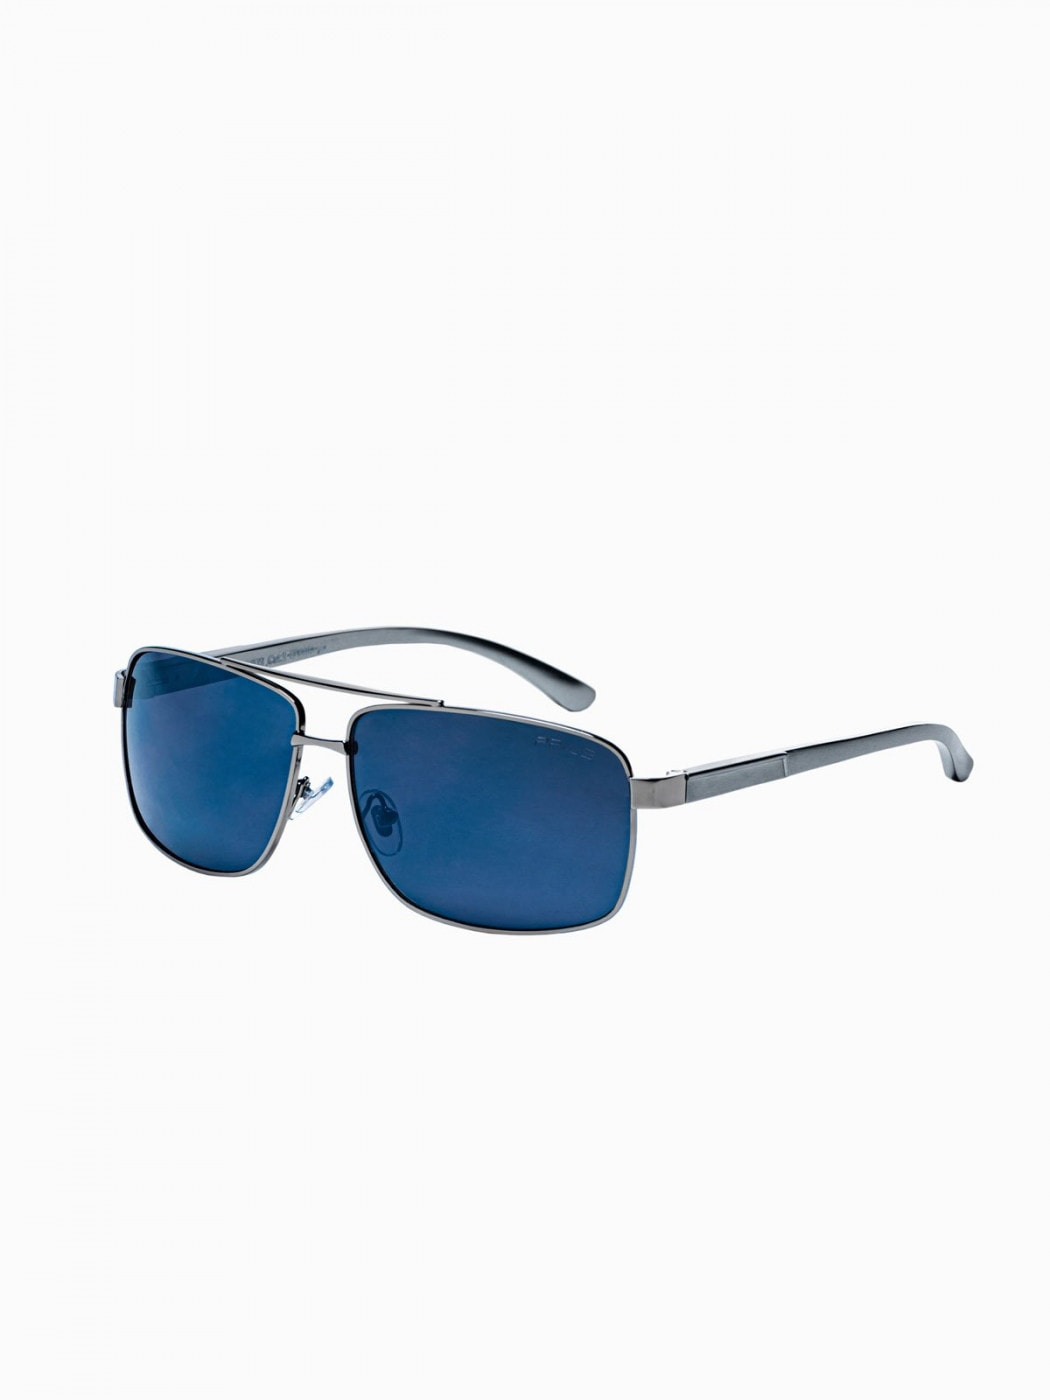 Ombre Clothing Sunglasses A280